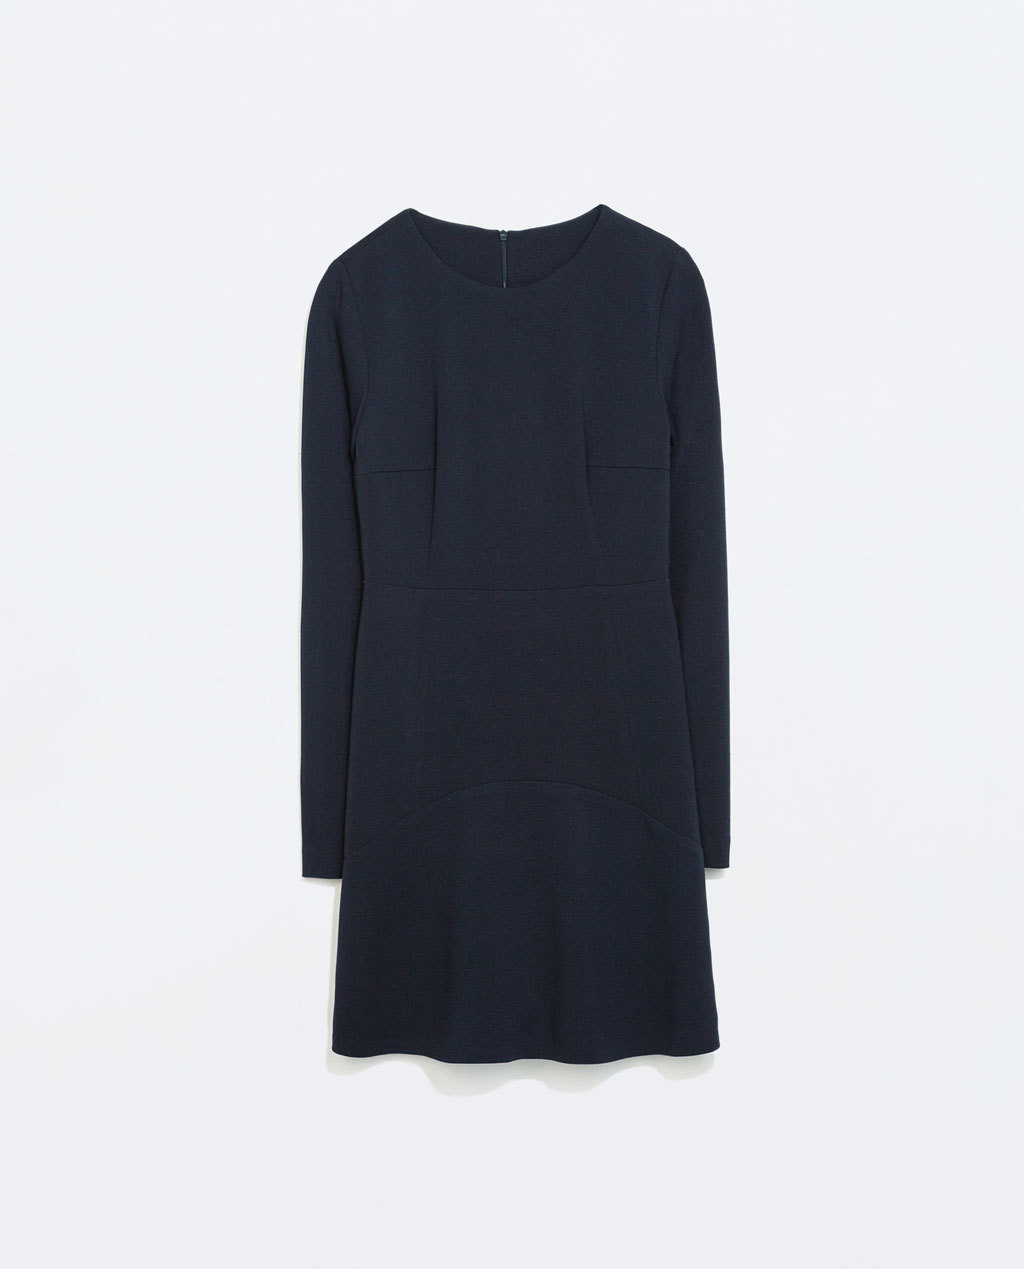 Dress With Layered Skirt - style: shift; length: mid thigh; neckline: round neck; pattern: plain; predominant colour: navy; occasions: casual, evening, occasion, creative work; fit: body skimming; fibres: polyester/polyamide - stretch; sleeve length: long sleeve; sleeve style: standard; texture group: jersey - stretchy/drapey; trends: minimal sleek; season: a/w 2014